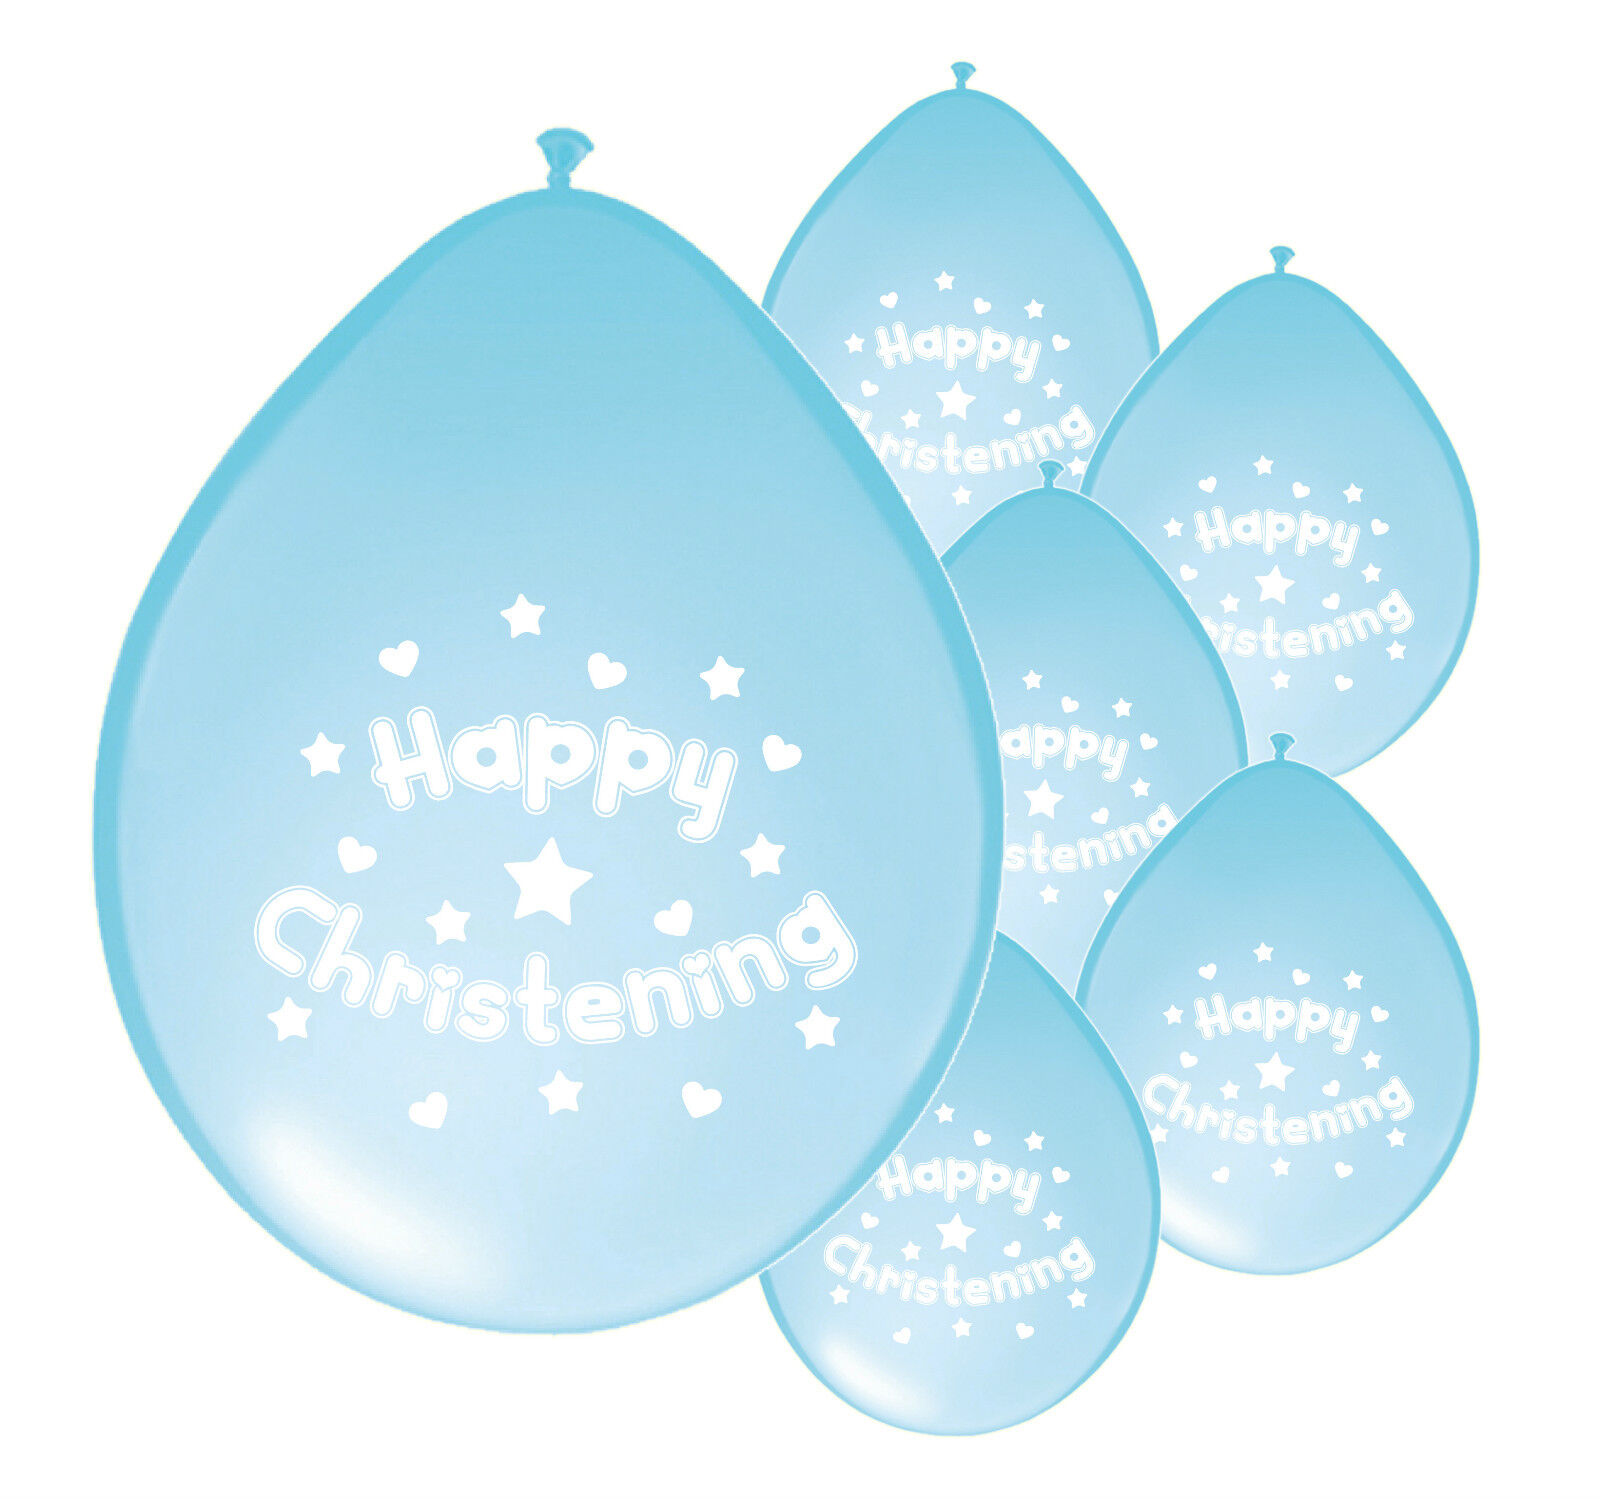 Christening Ornaments Baby Christmas Ornaments: Christening Decorations